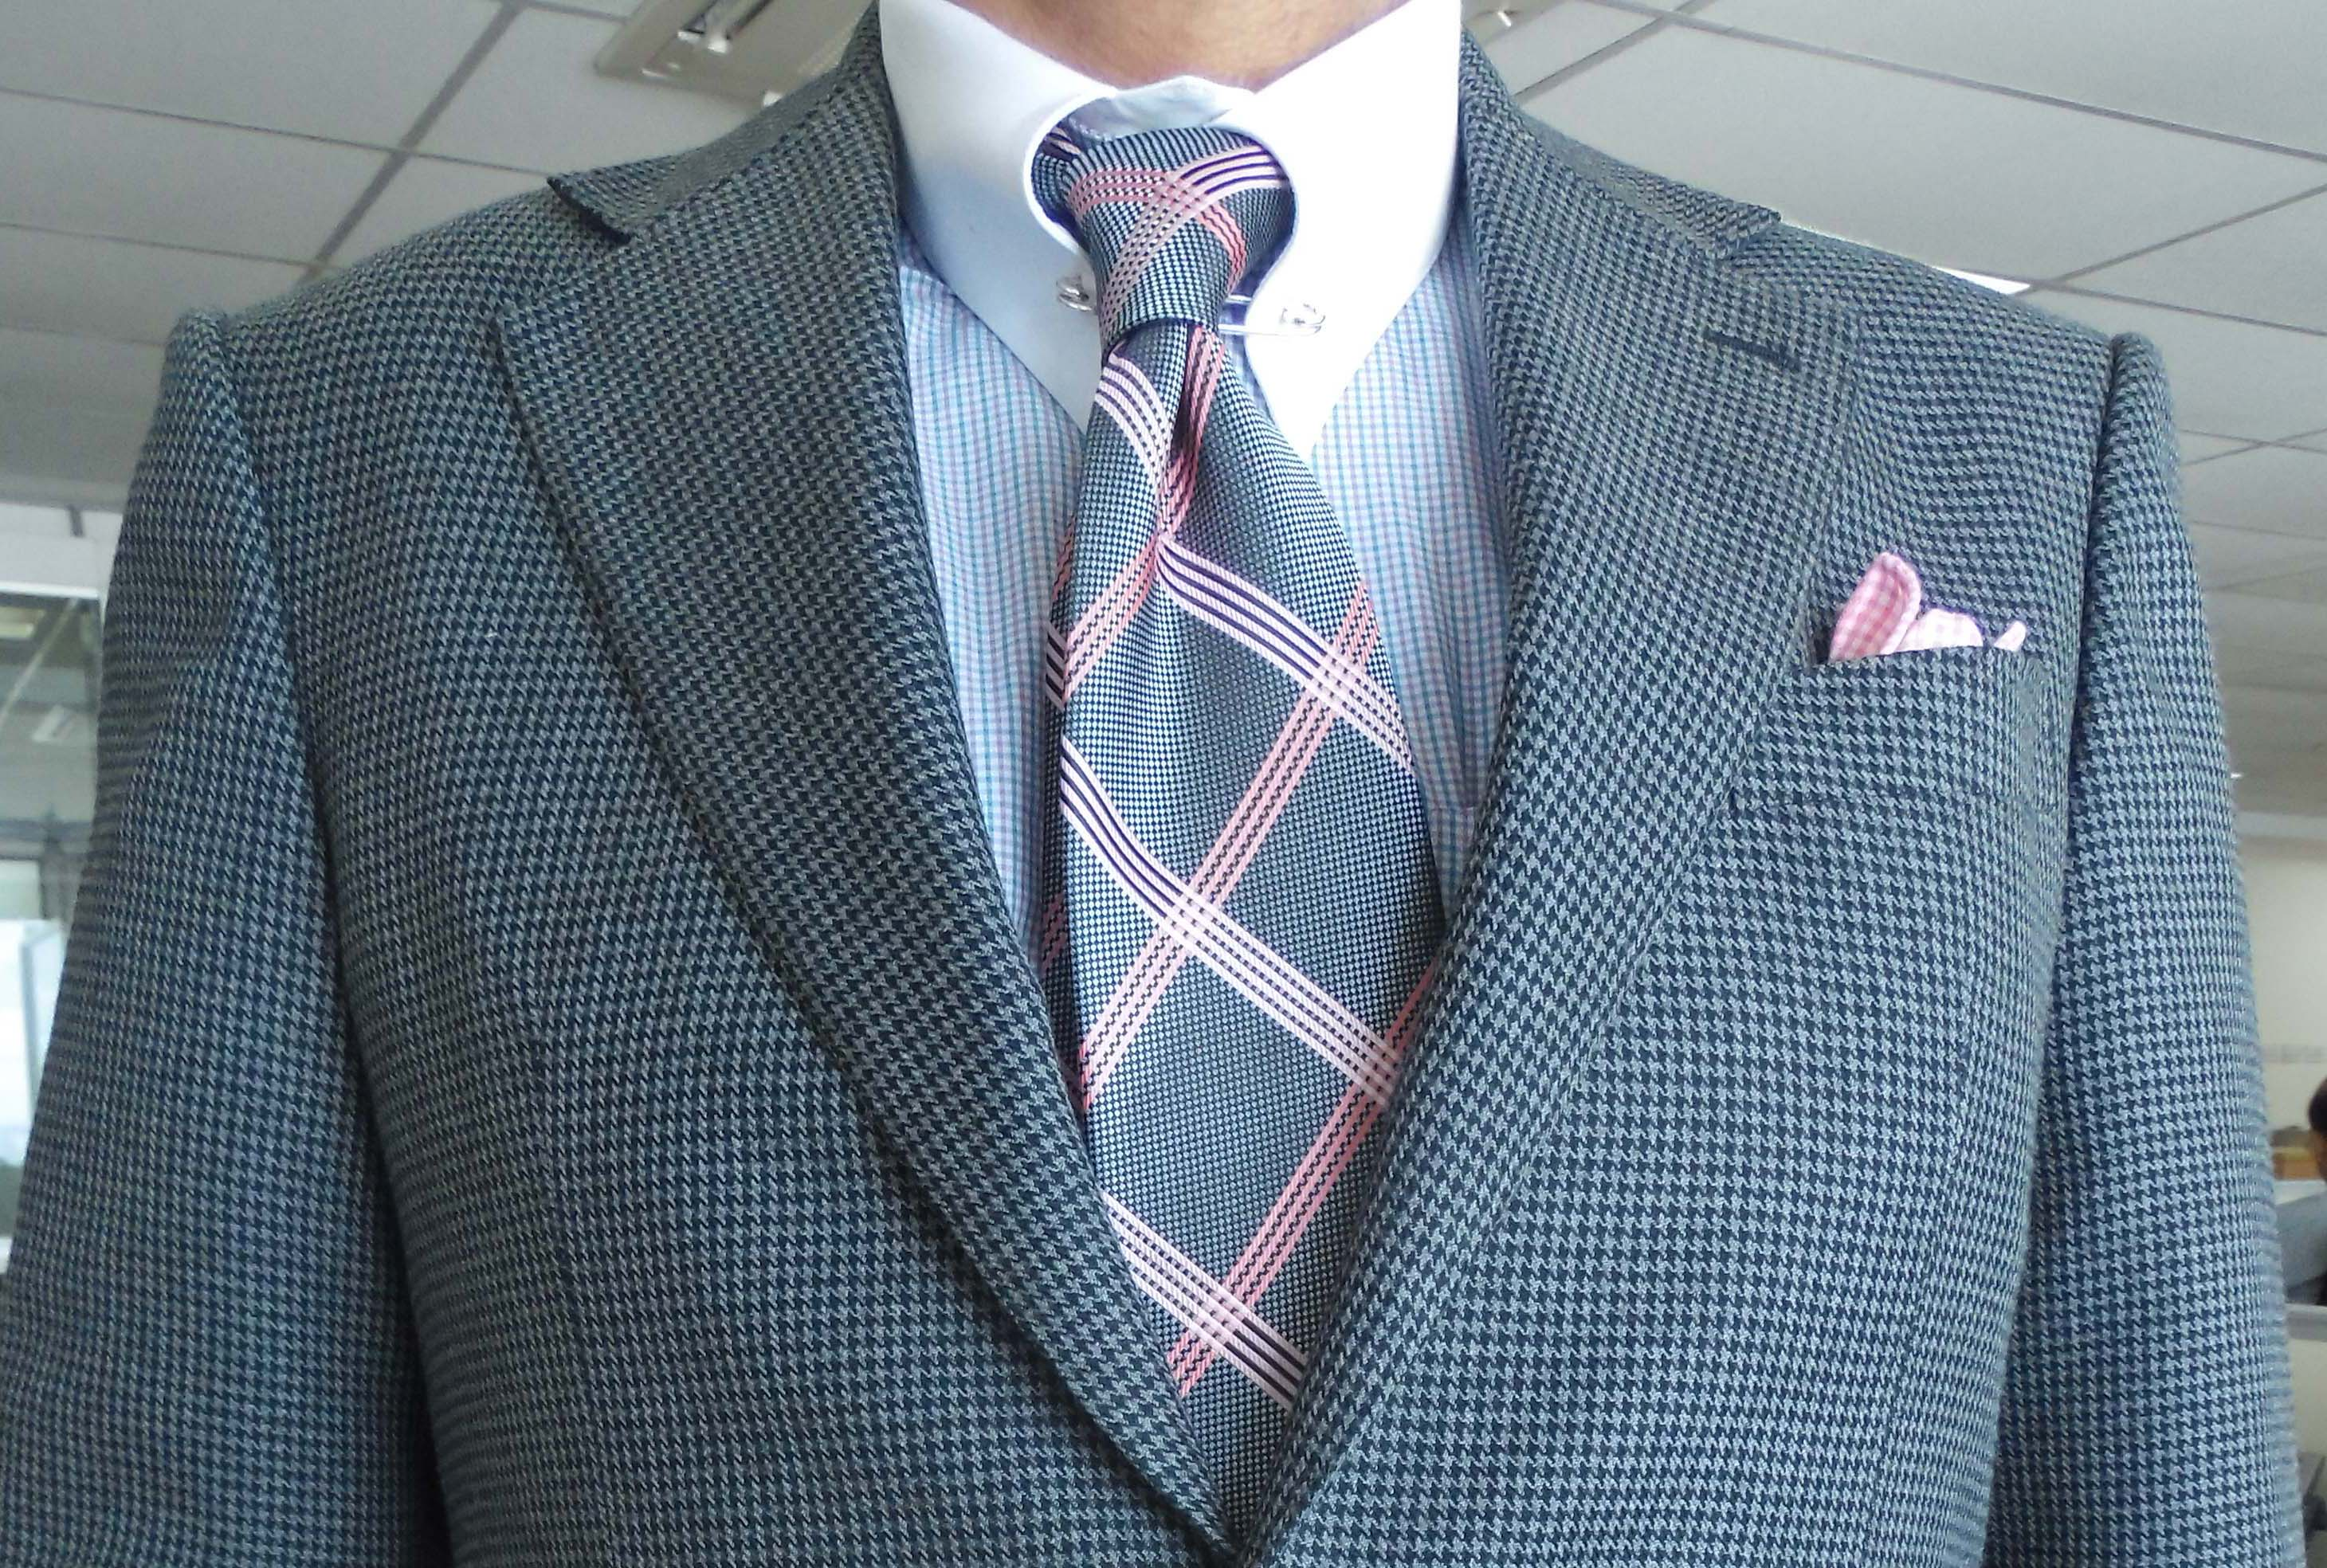 fde7efd1f39c7 ... pocket square Gray hounds tooth suit, gray and pink check silk tie, pink  and blue silk